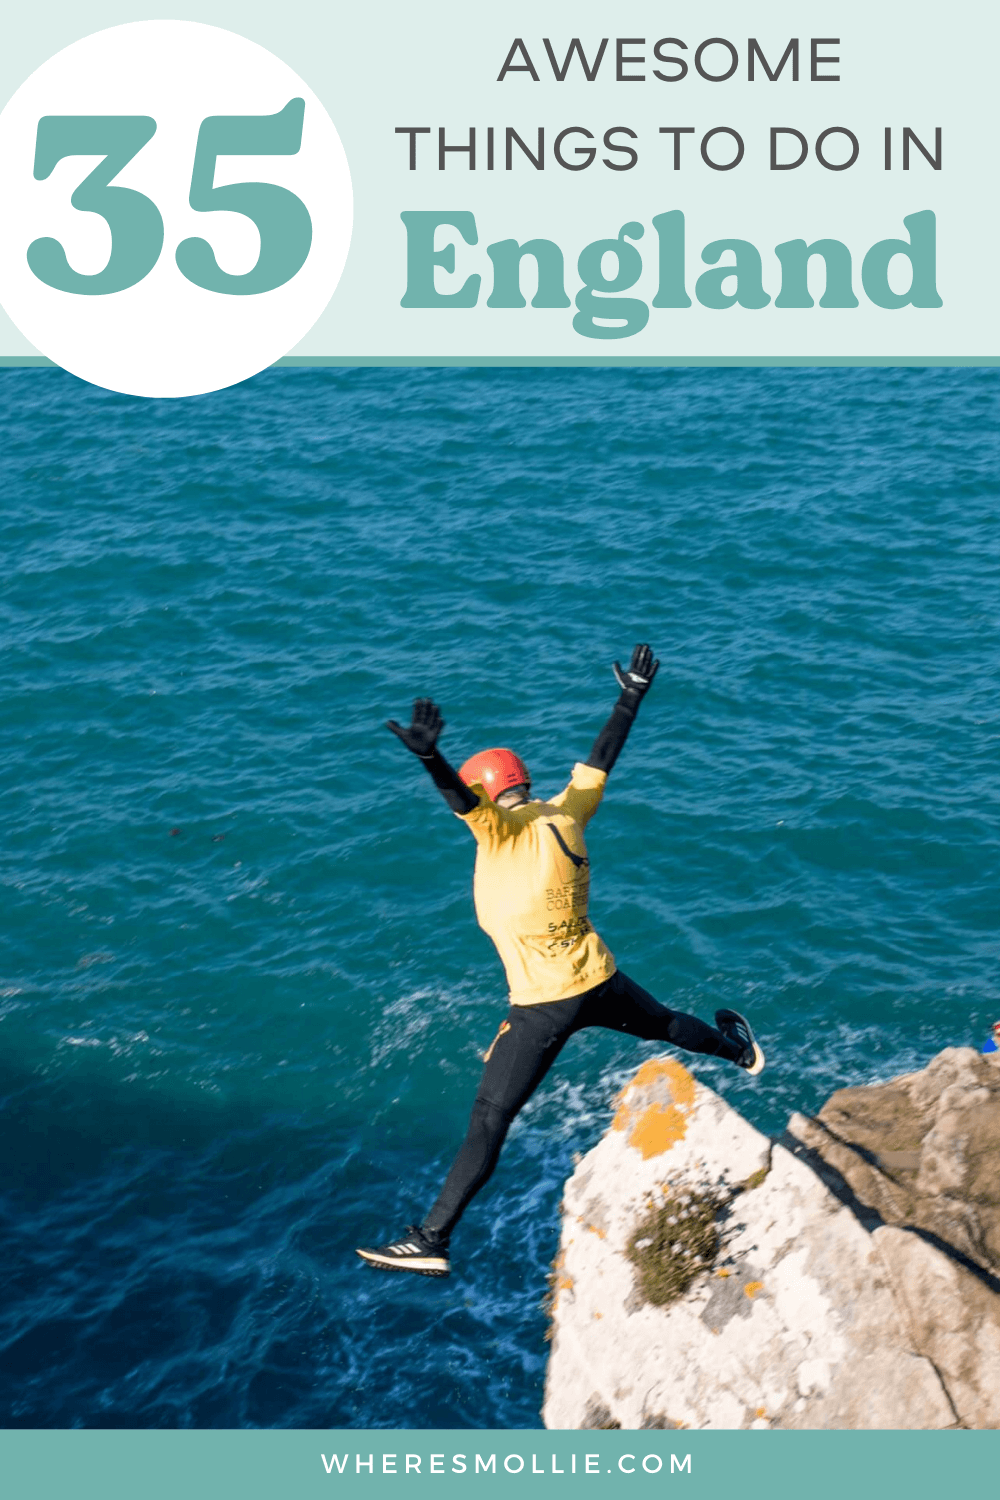 The best things to do in England